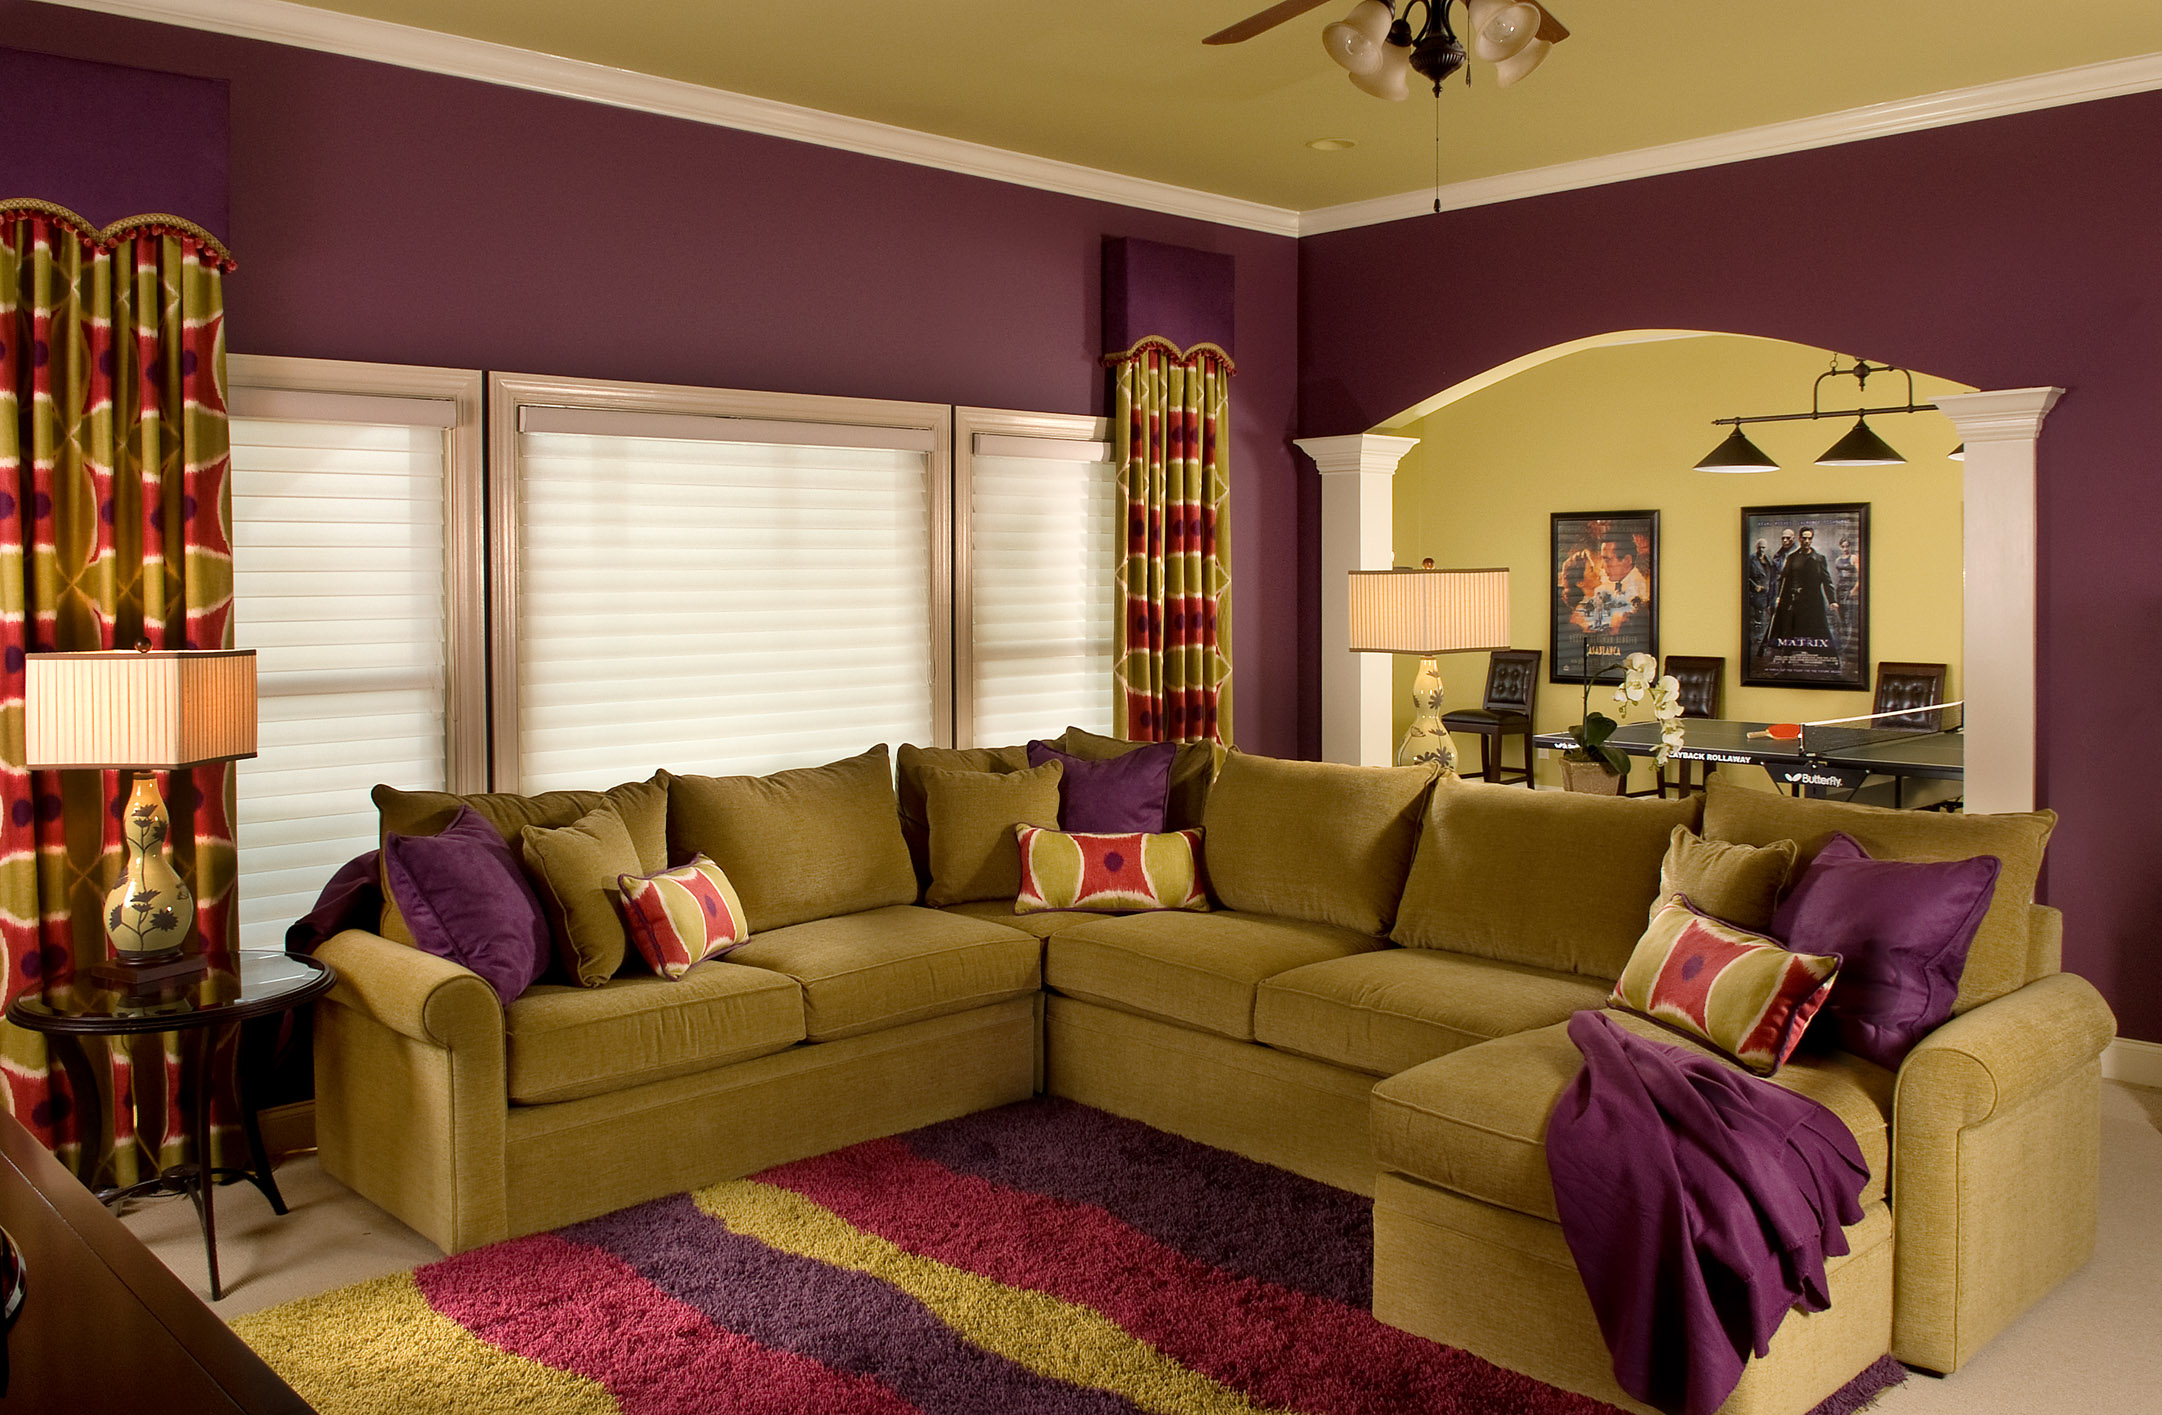 Painting Tips How to choose the best wall paint color for your